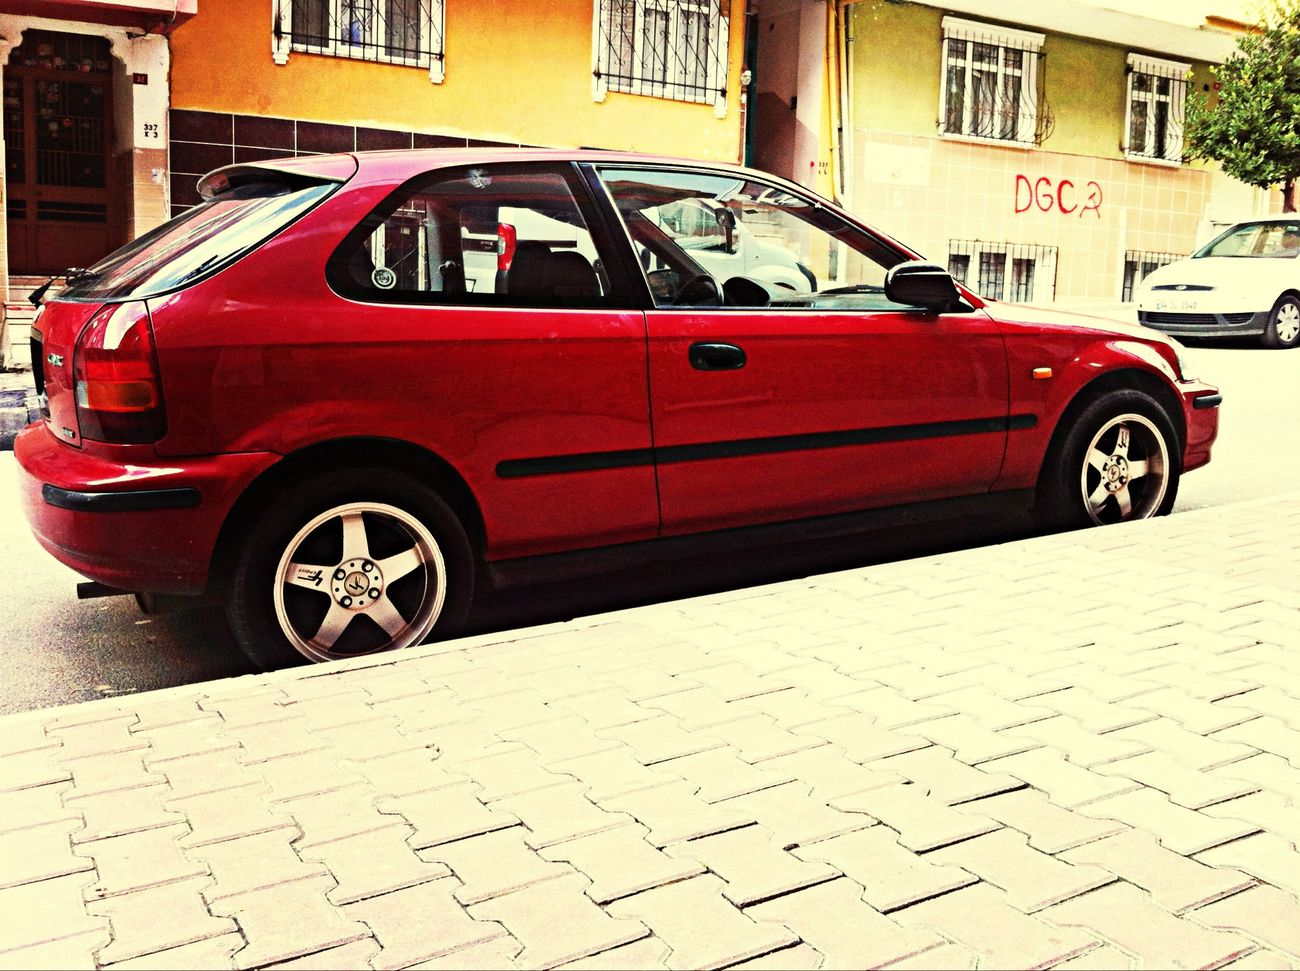 my car my world :)